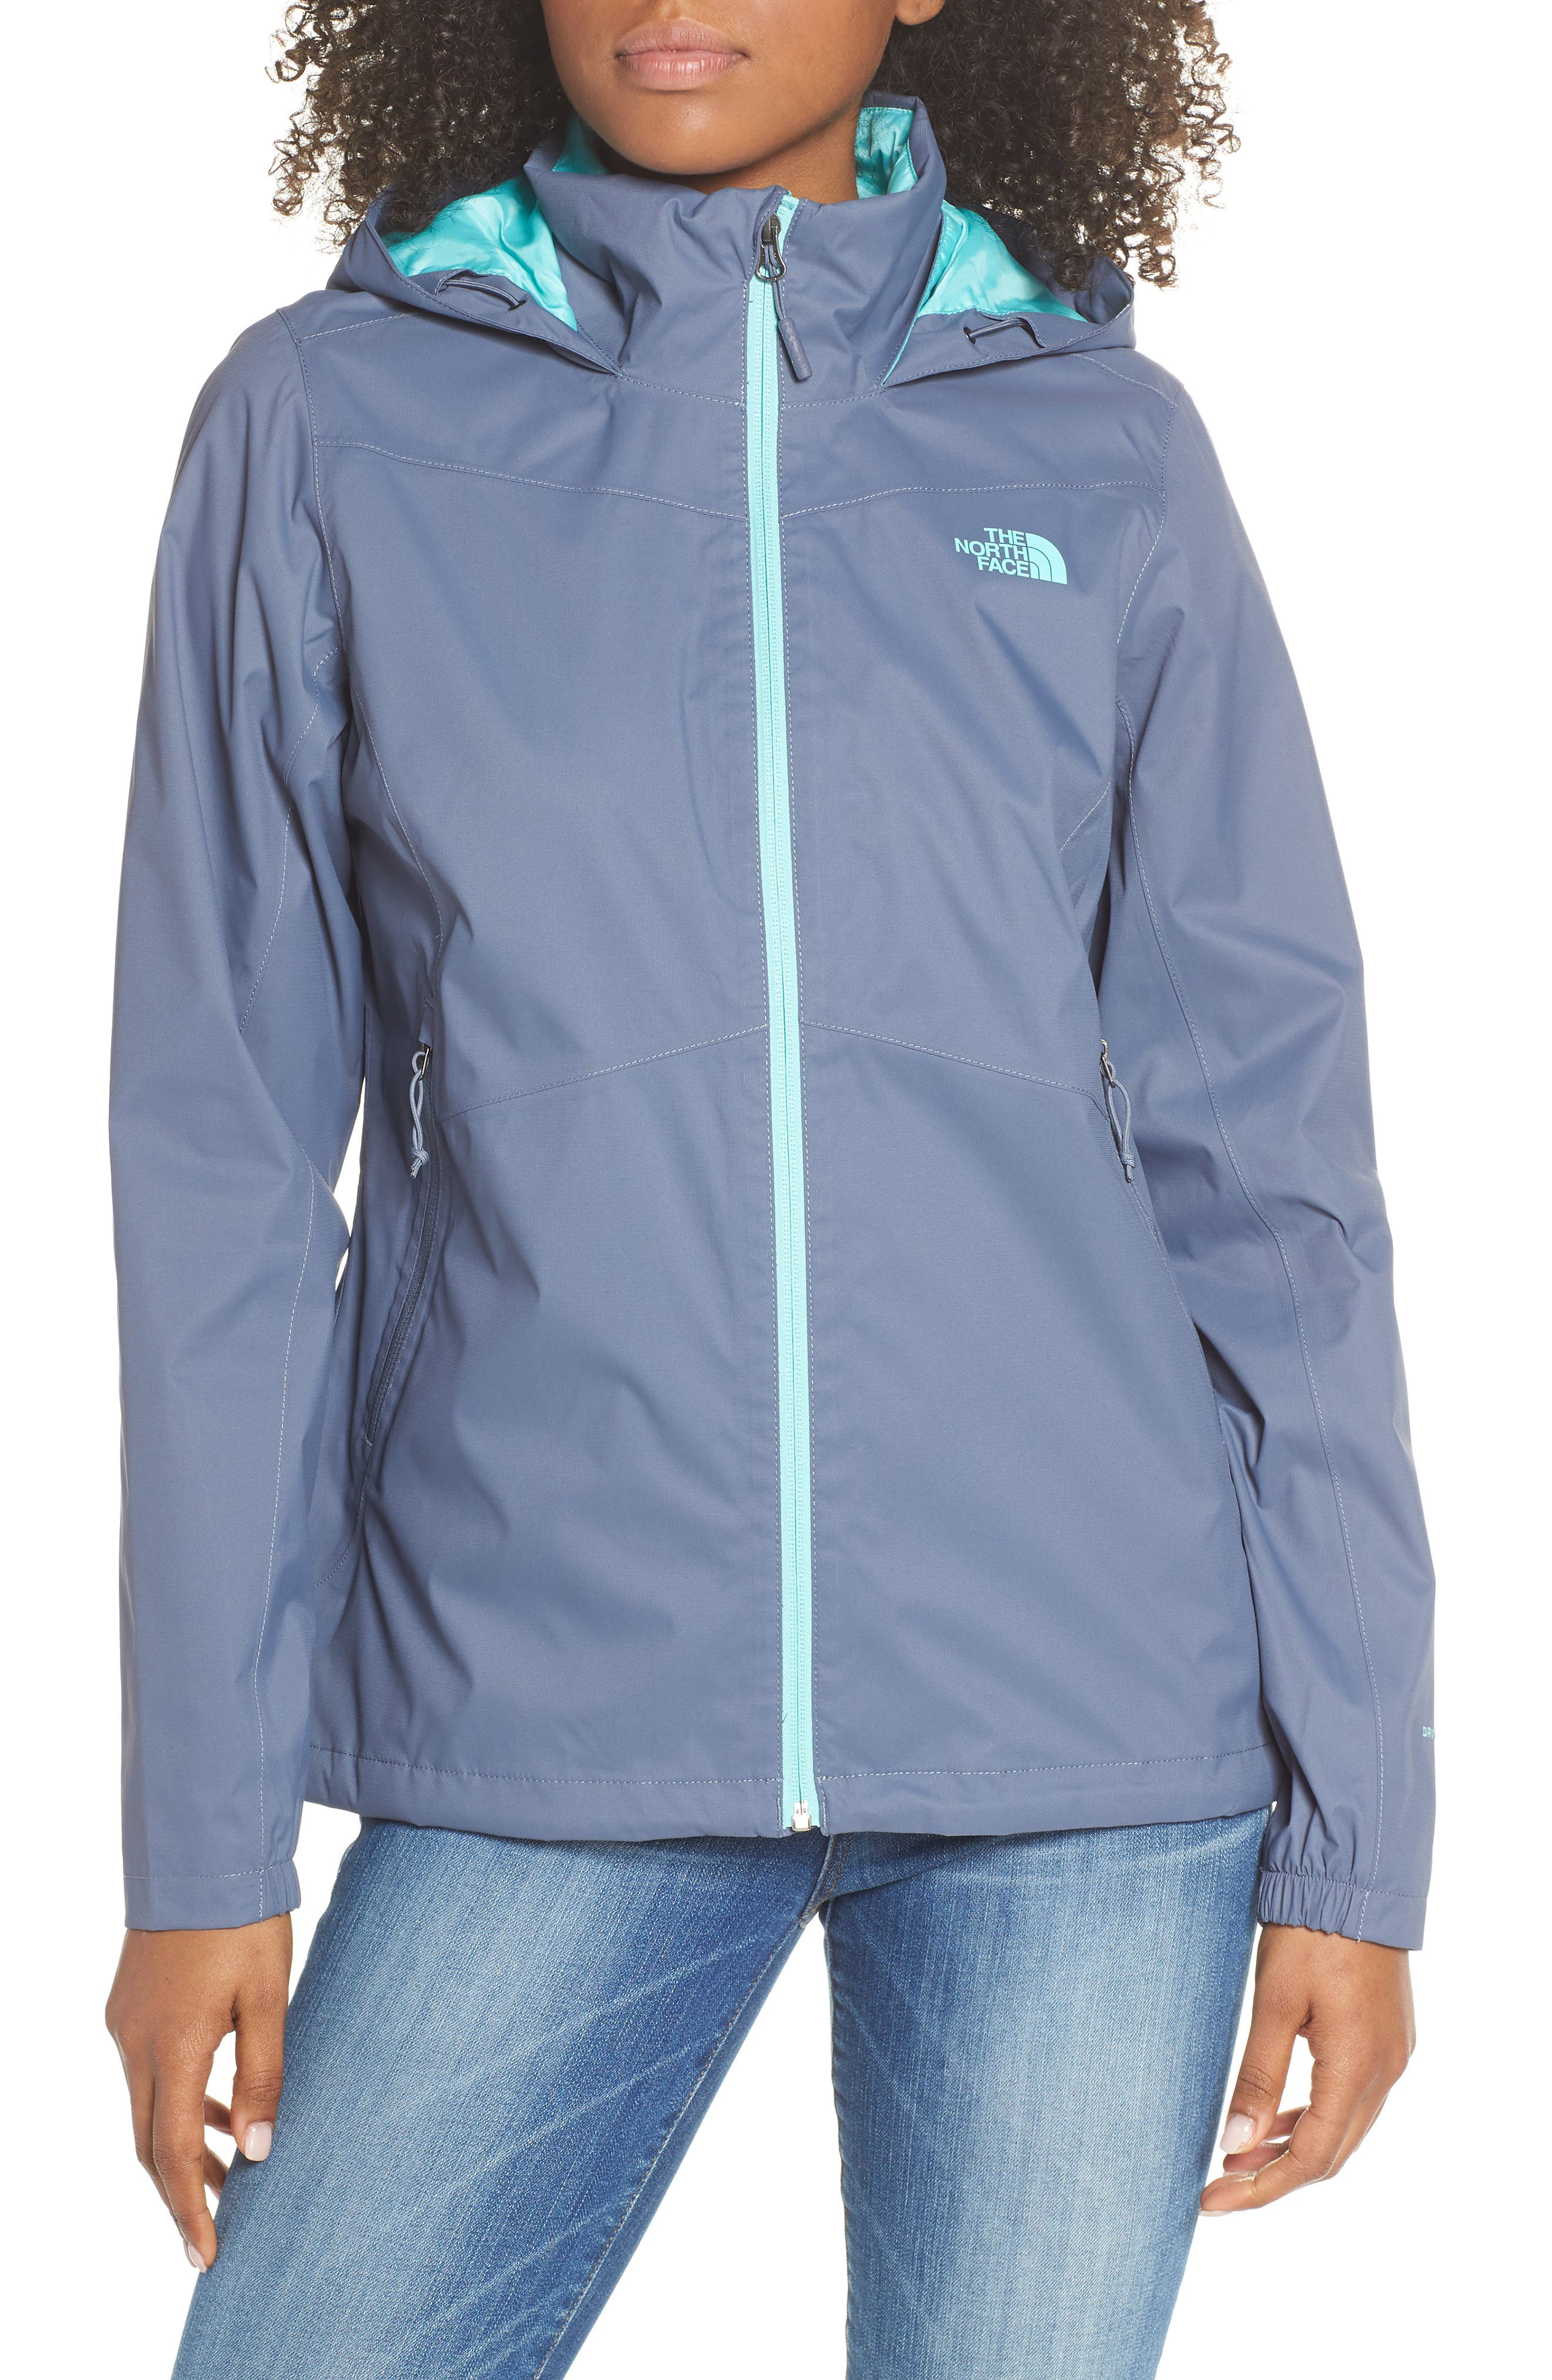 THE NORTH FACE, Resolve Plus Waterproof Jacket, Alternate thumbnail 5, color, GRISAILLE GREY/ GRISAILLE GREY